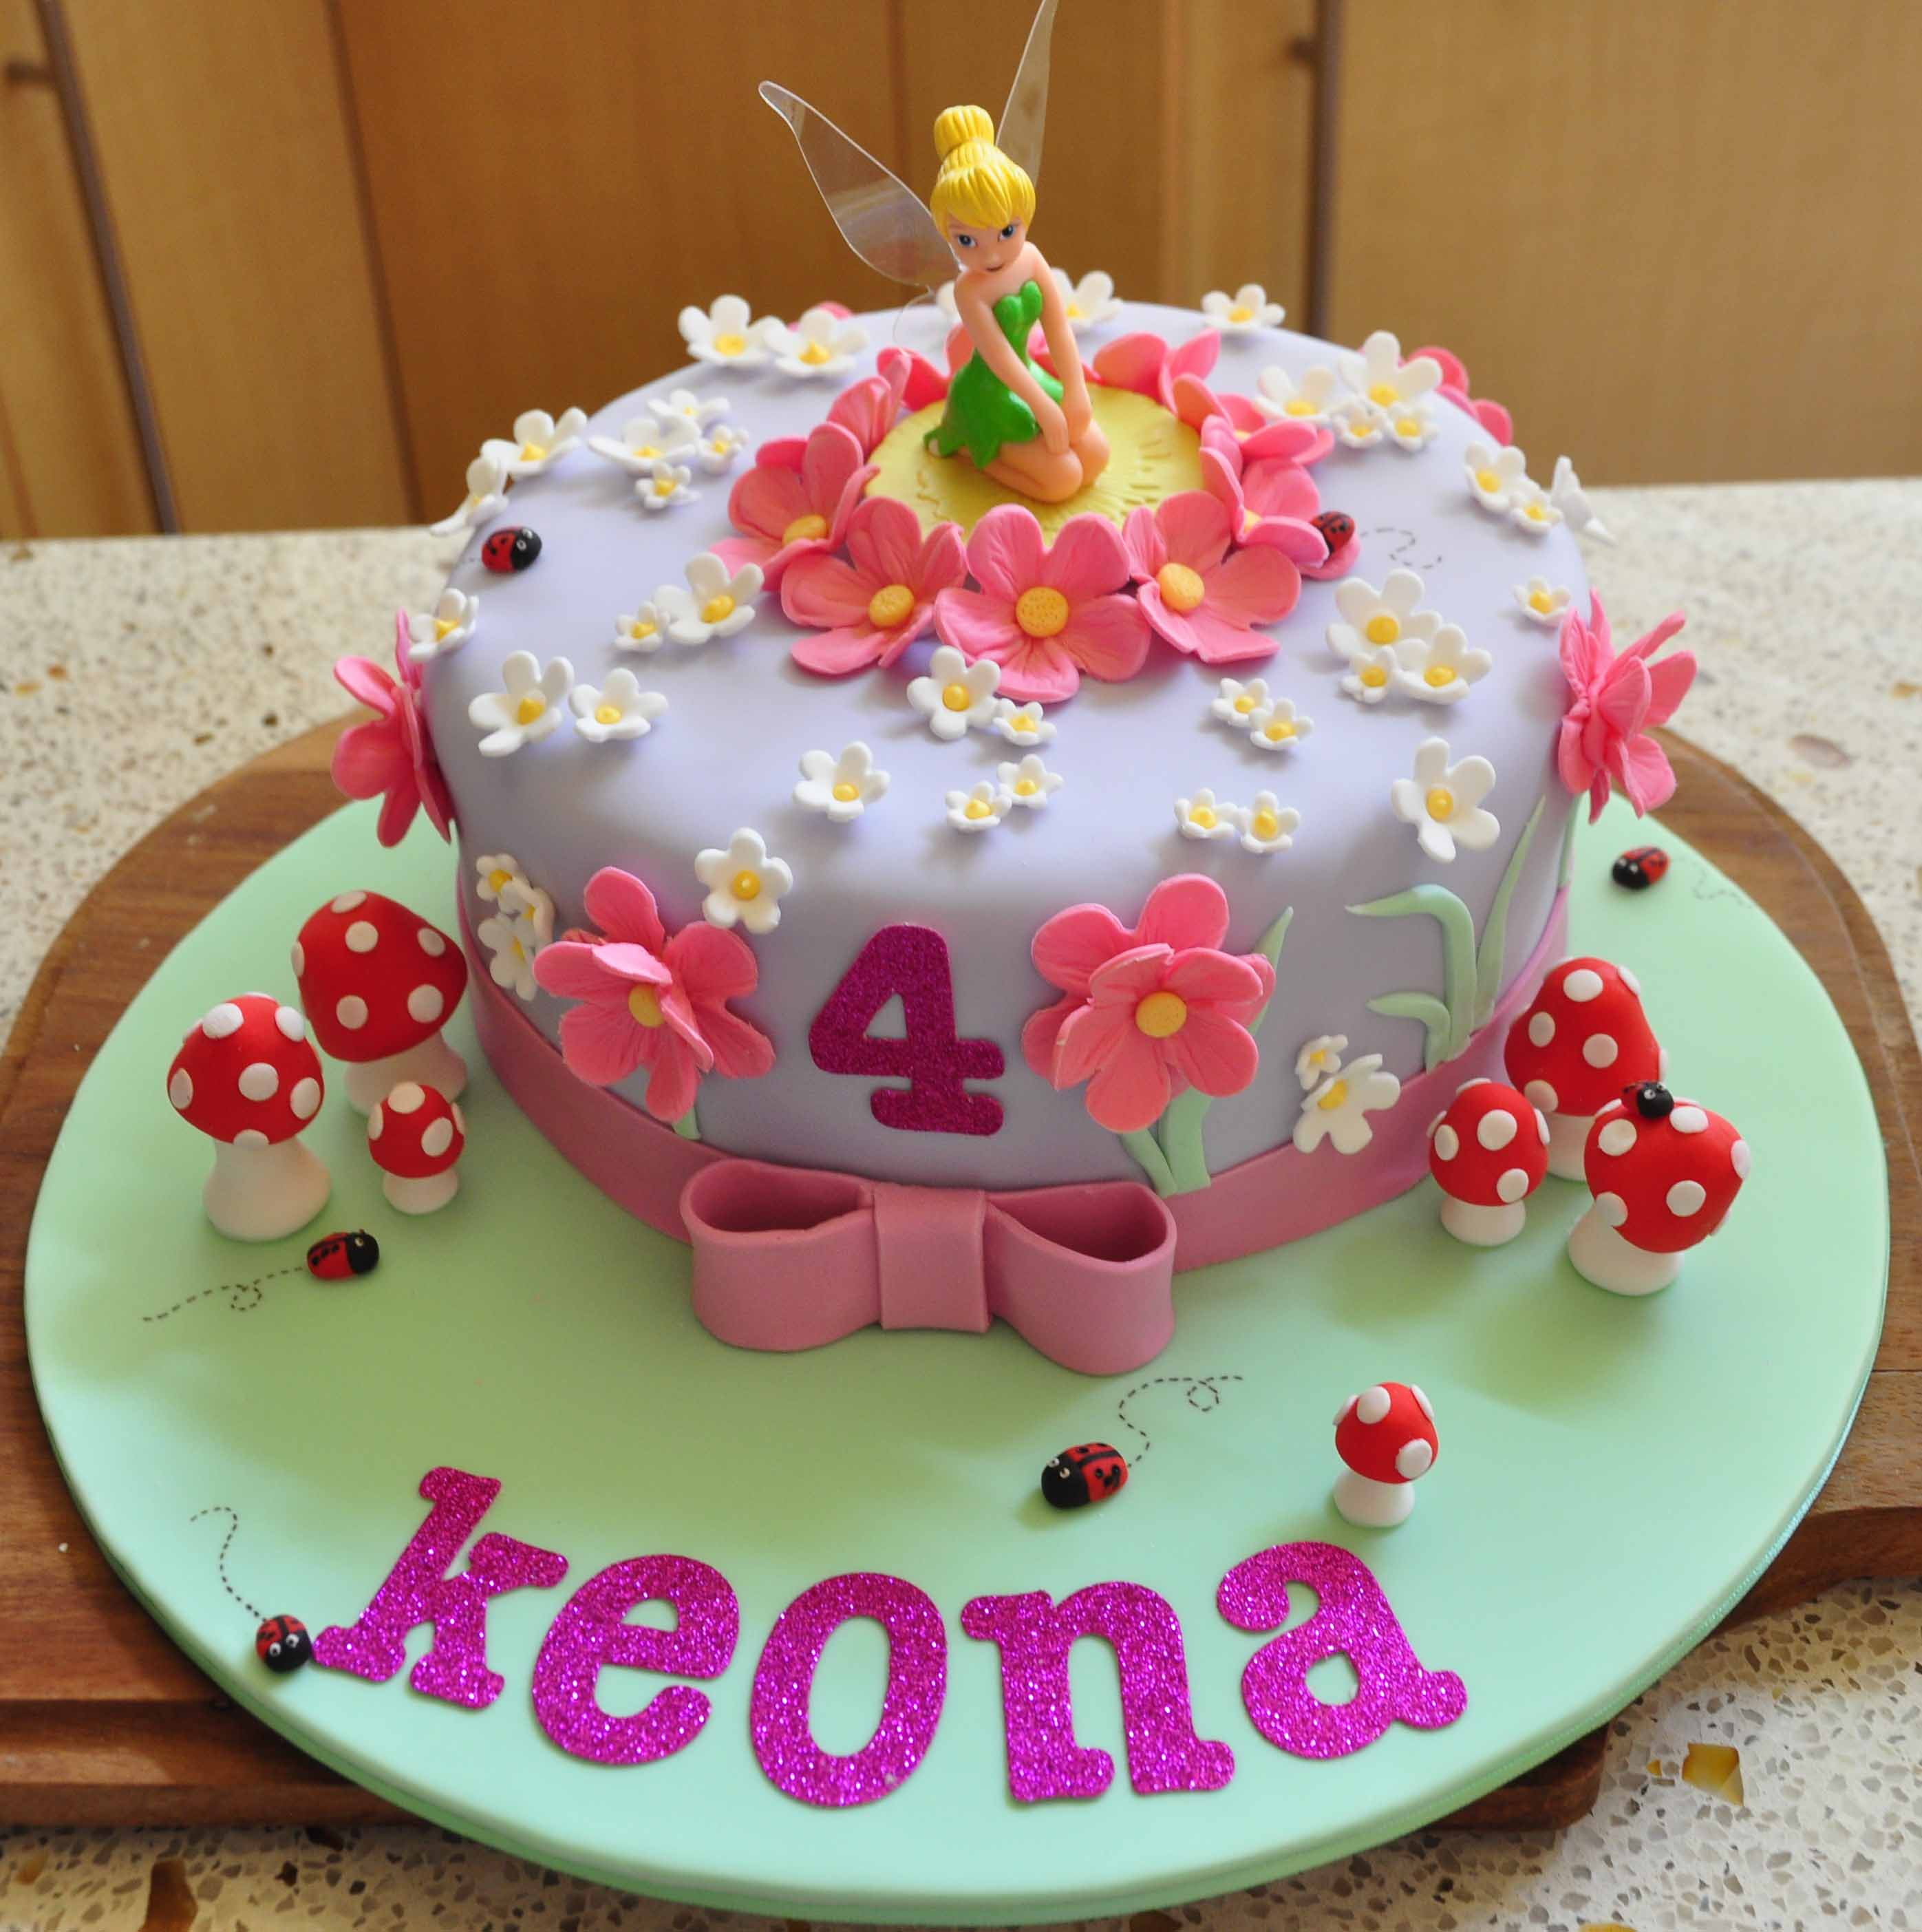 tinkerbell birthday cake designs - Birthday Cake Designs Ideas